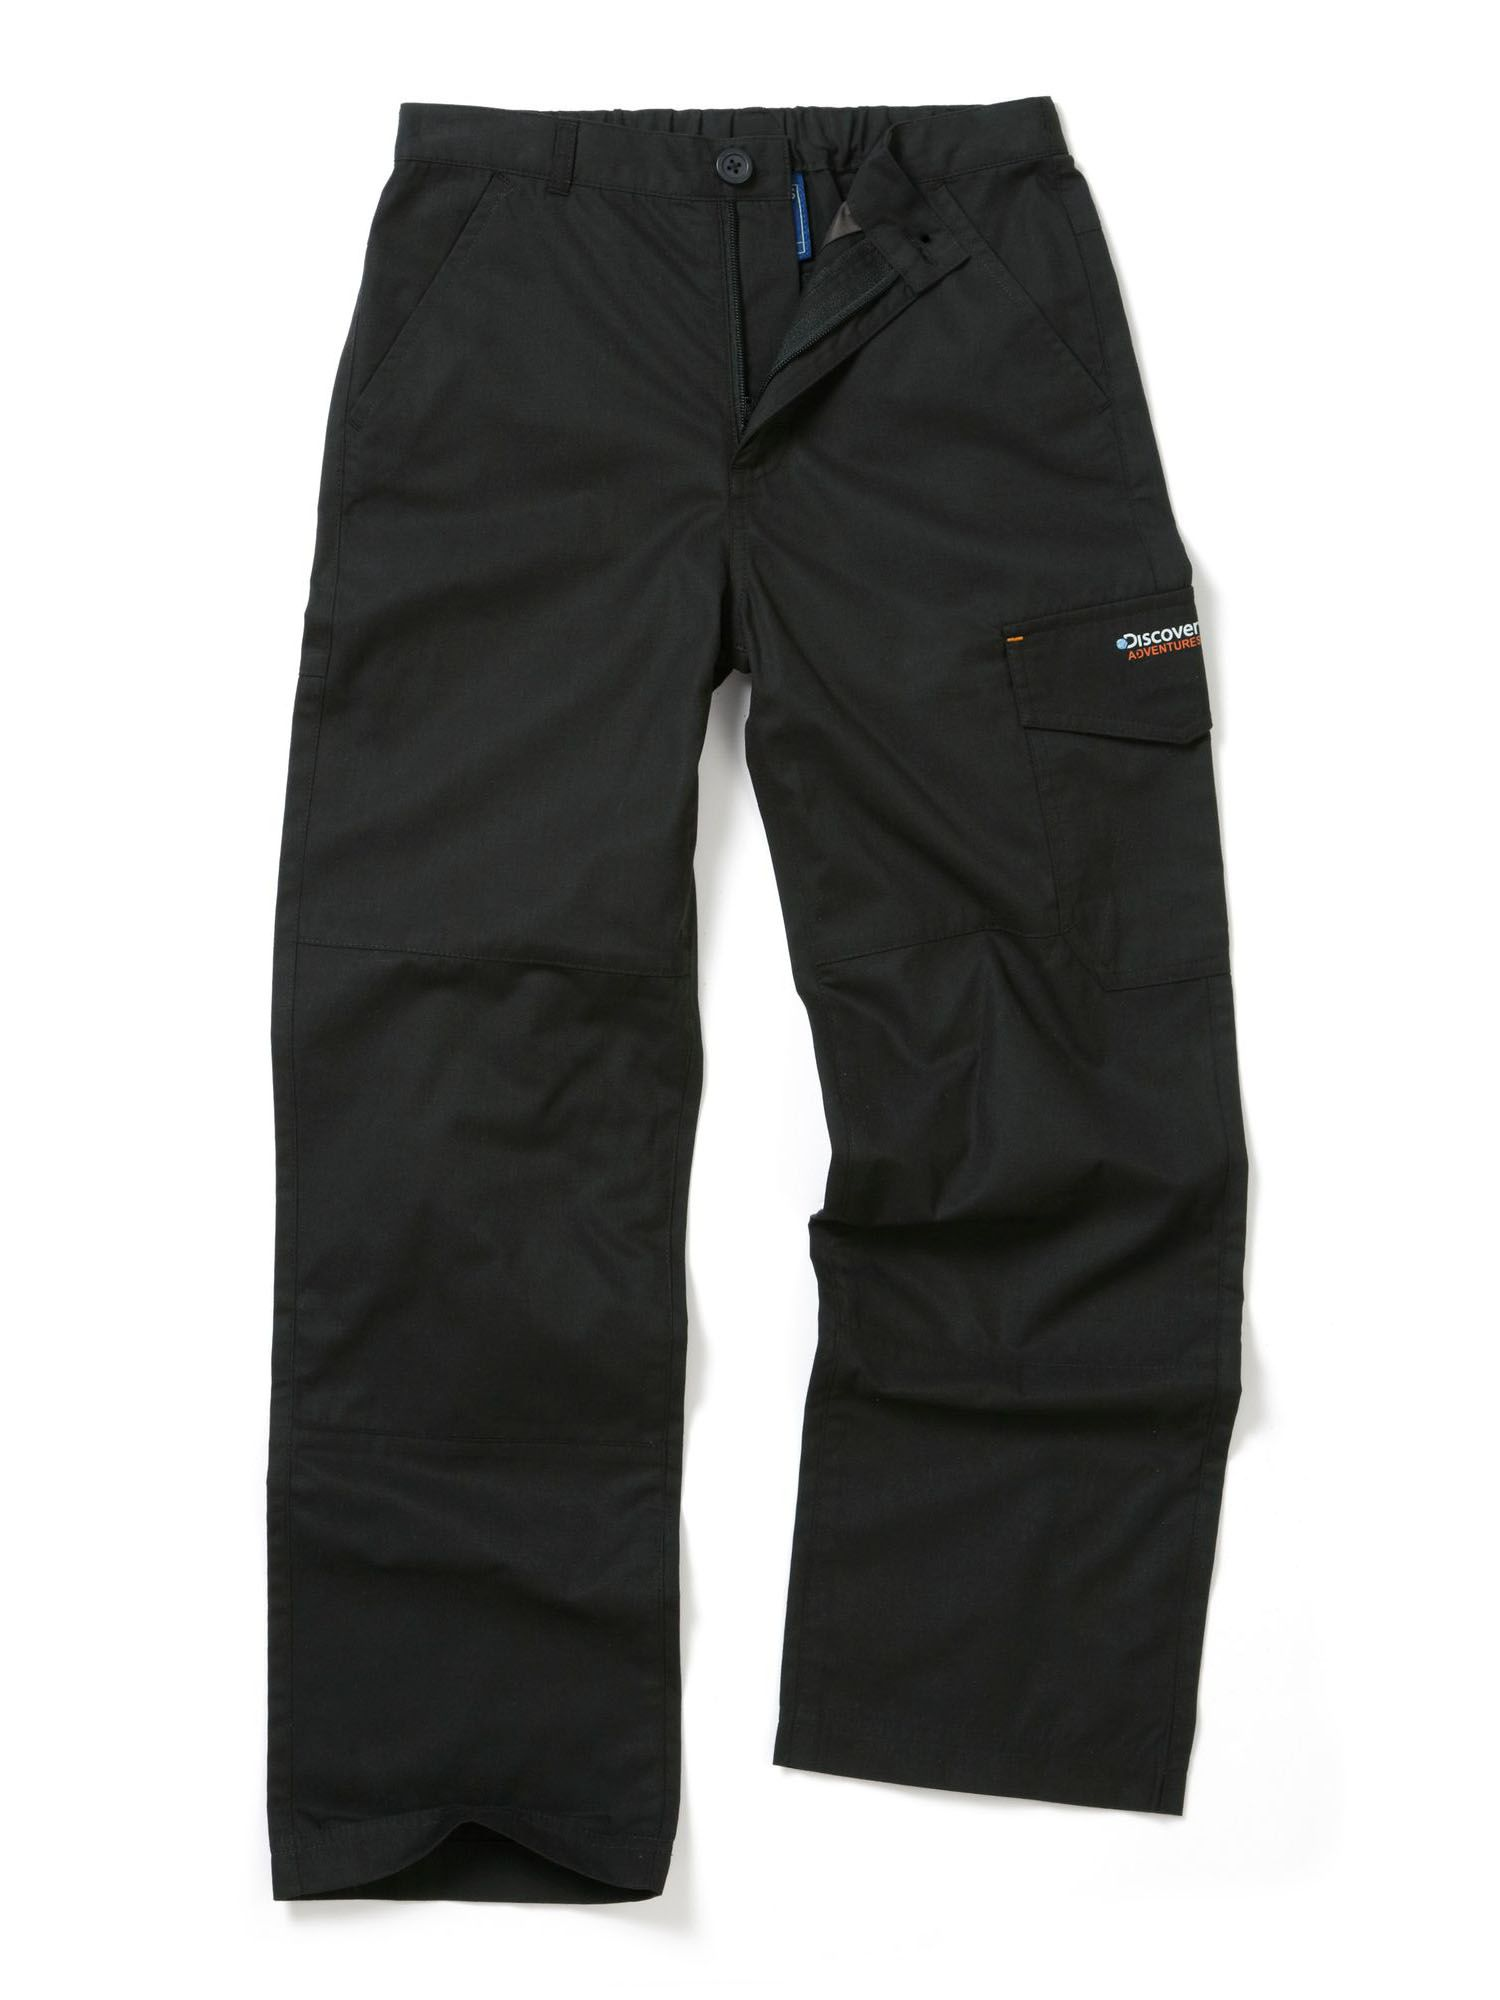 Photo of Craghoppers kids discovery adventures trousers- black